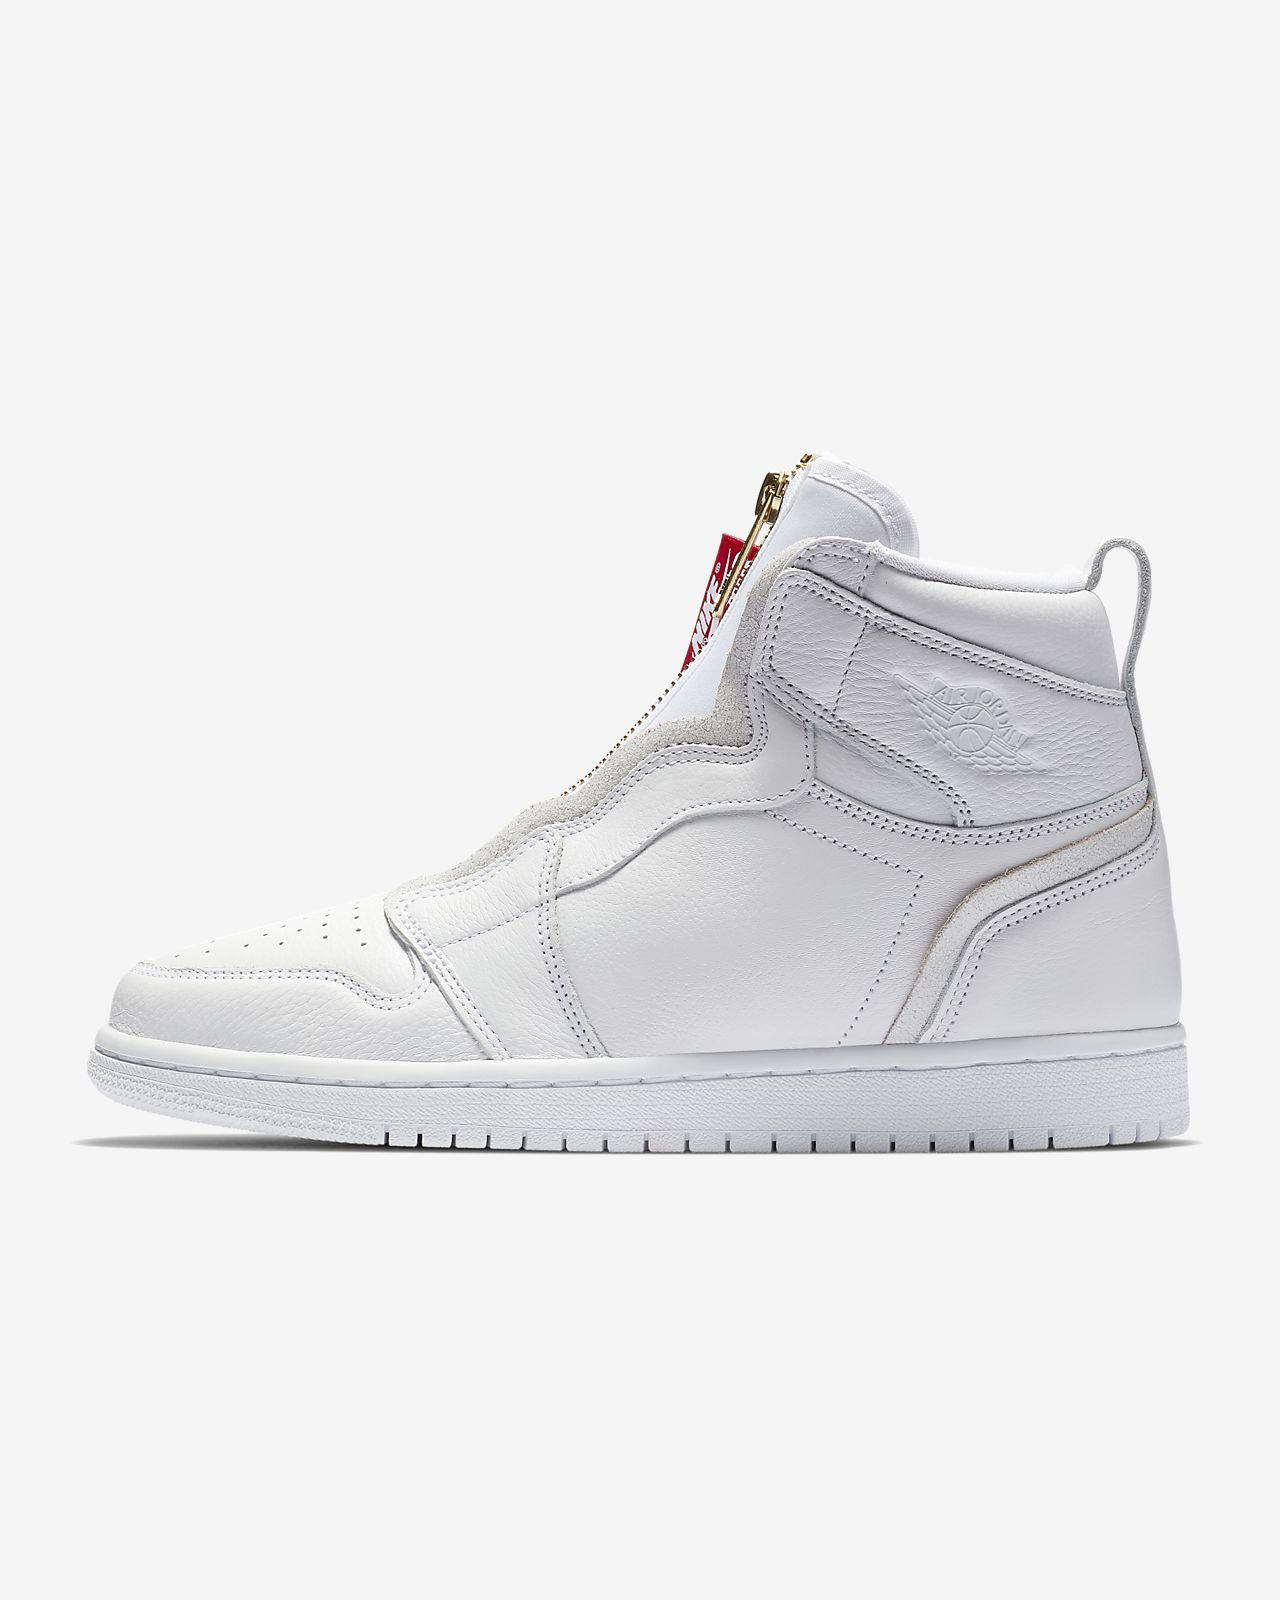 fb4ed649a5b560 Air Jordan 1 High Zip Women s Shoe. Nike.com